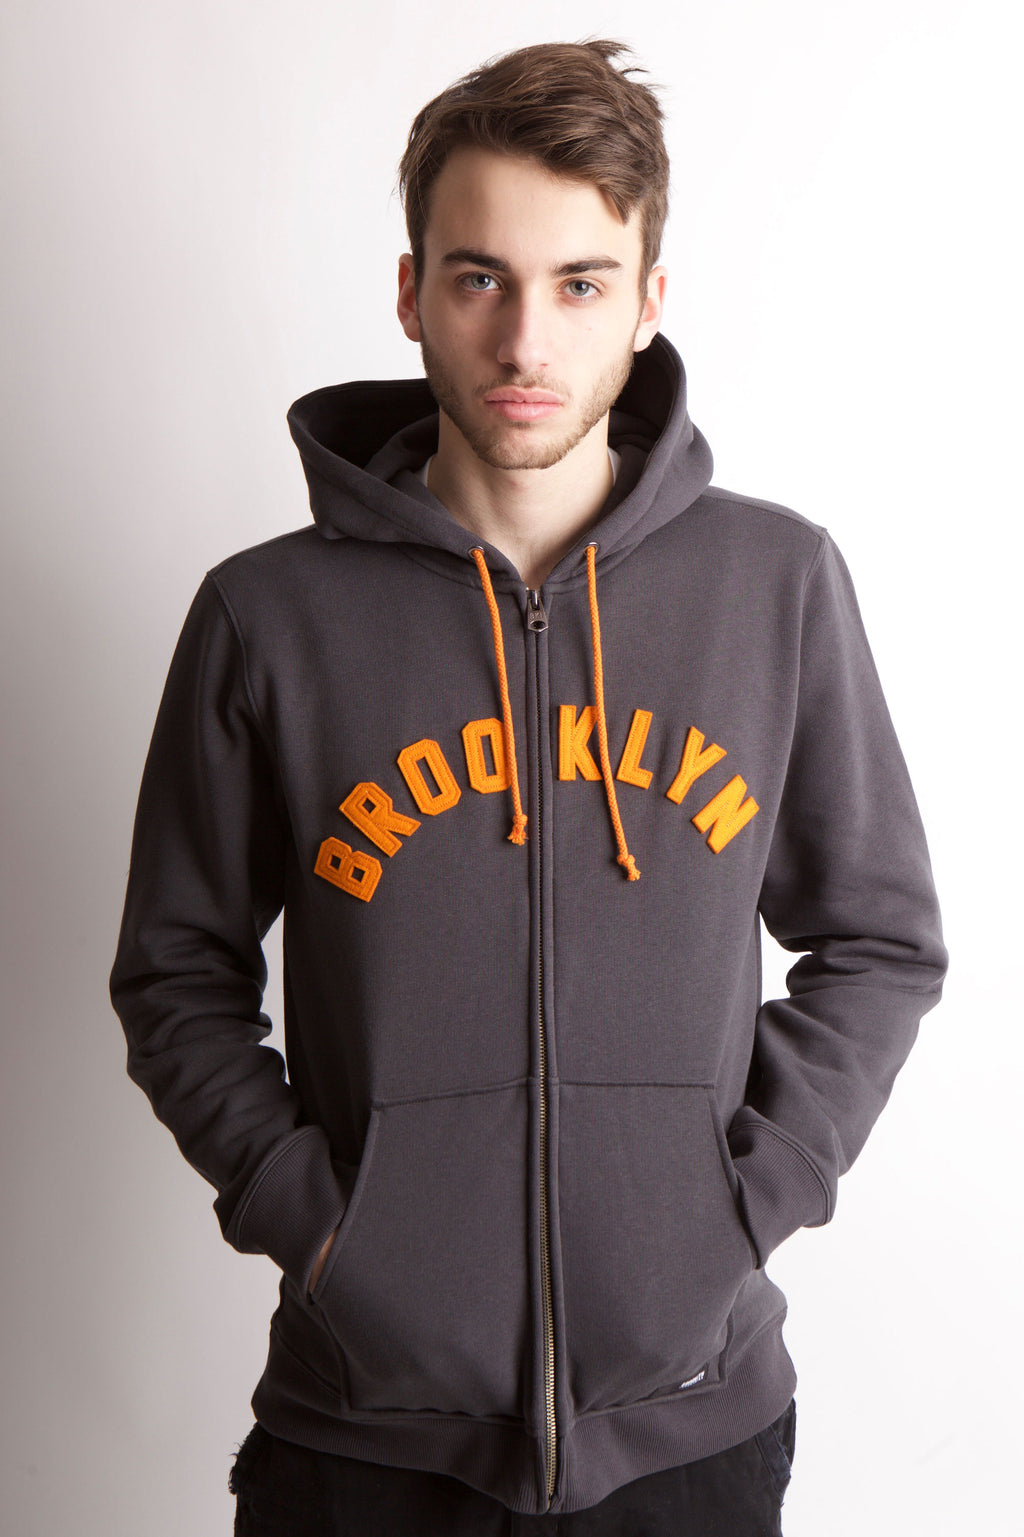 MAN WEARS GREY HOODED SWEATSHIRT WITH HAND IN THE FRONT JOEY POUCH POCKET. BROOKLYN IN APPLIQUE LETTERS ACROSS THE CHEST IN AN ORANGE COLOR.